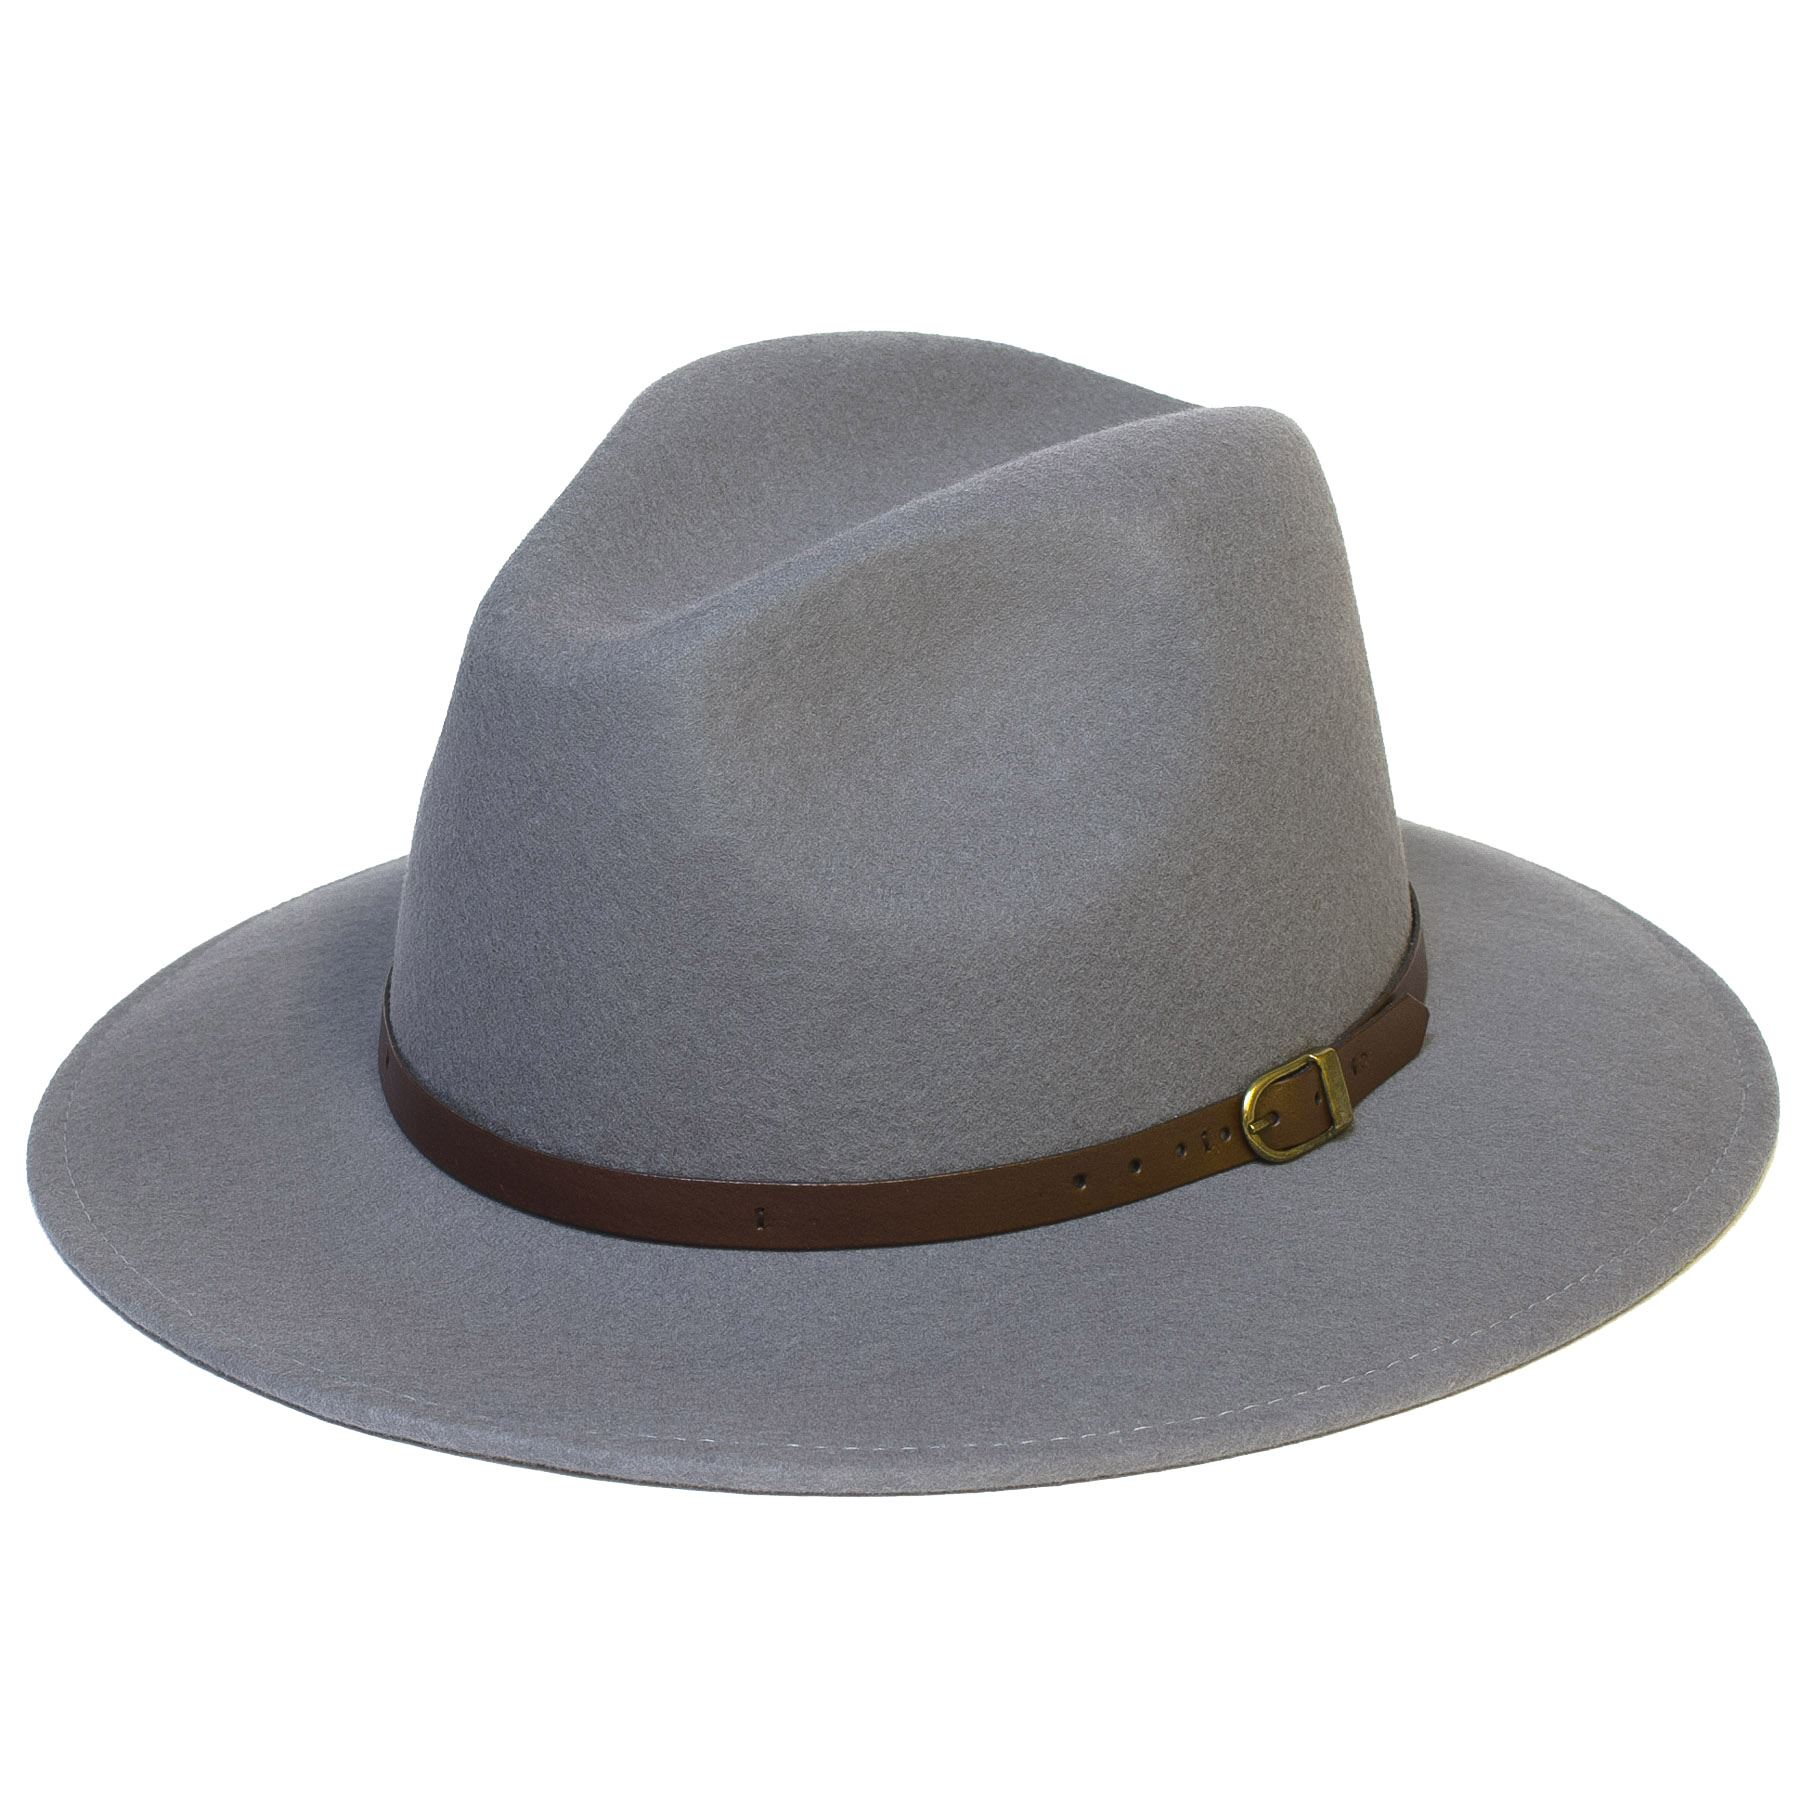 Shop for mens wide brim hat online at Target. Free shipping on purchases over $35 and save 5% every day with your Target REDcard.